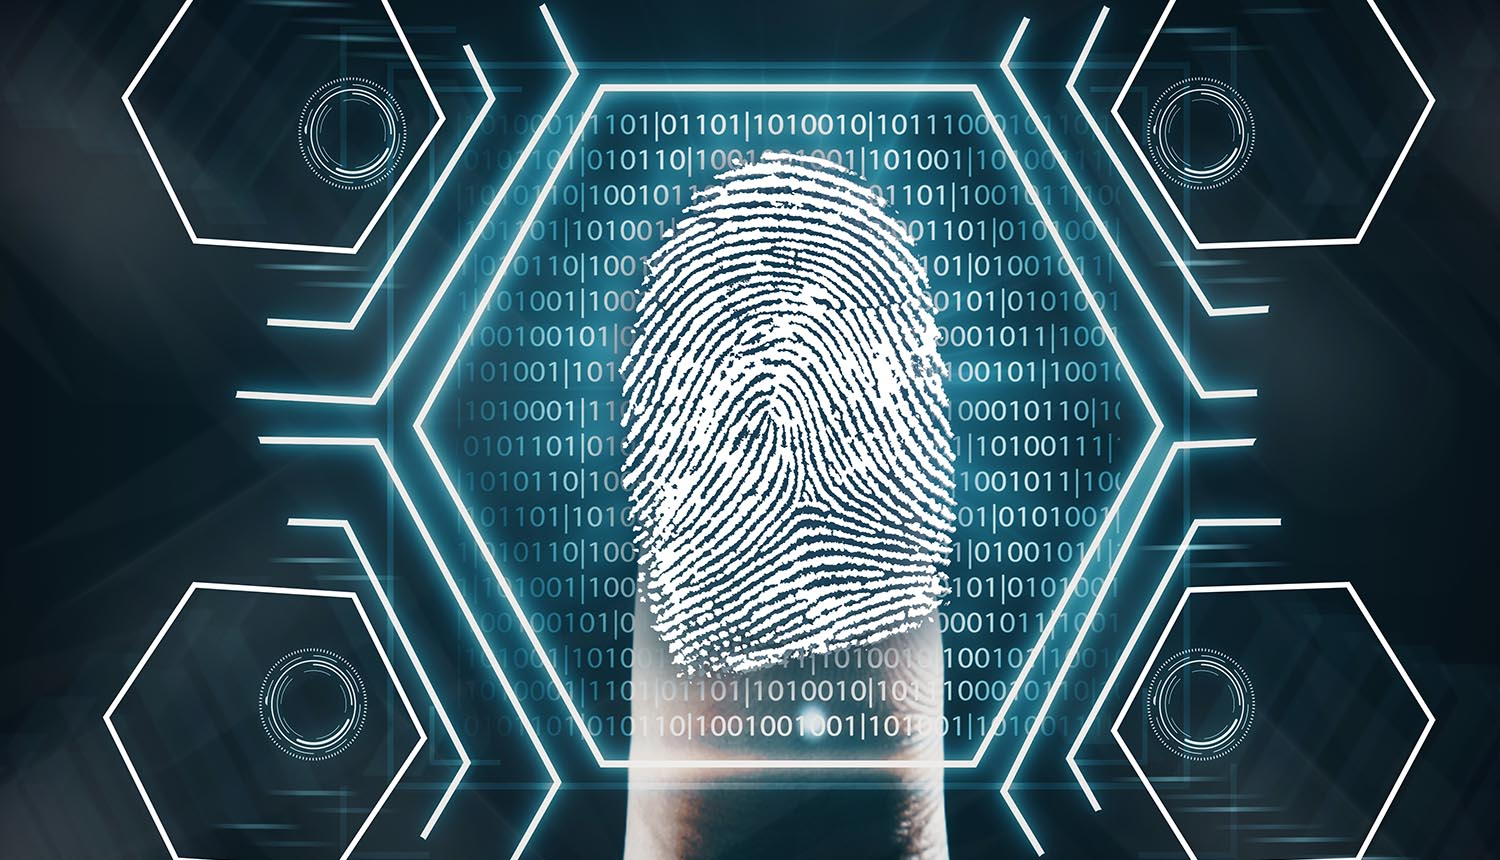 Futuristic fingerprint scanning device biometric security system. Innovation concept. 3D Rendering